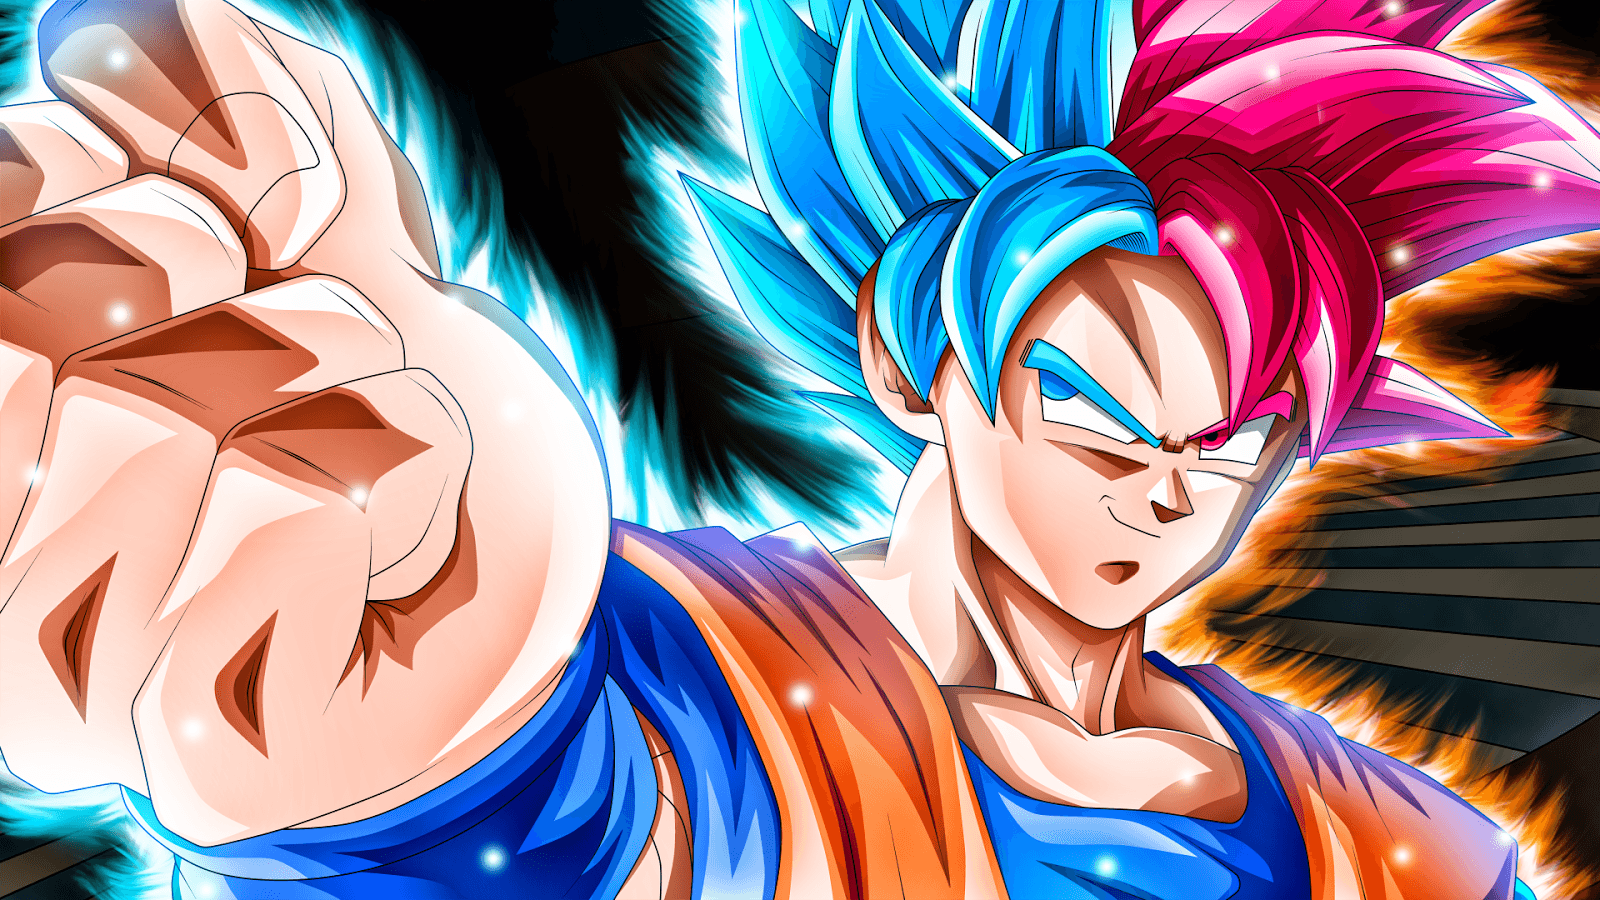 Goku Super Saiyan Blue And Gold Mix Black Wallpapers Wallpaper Cave